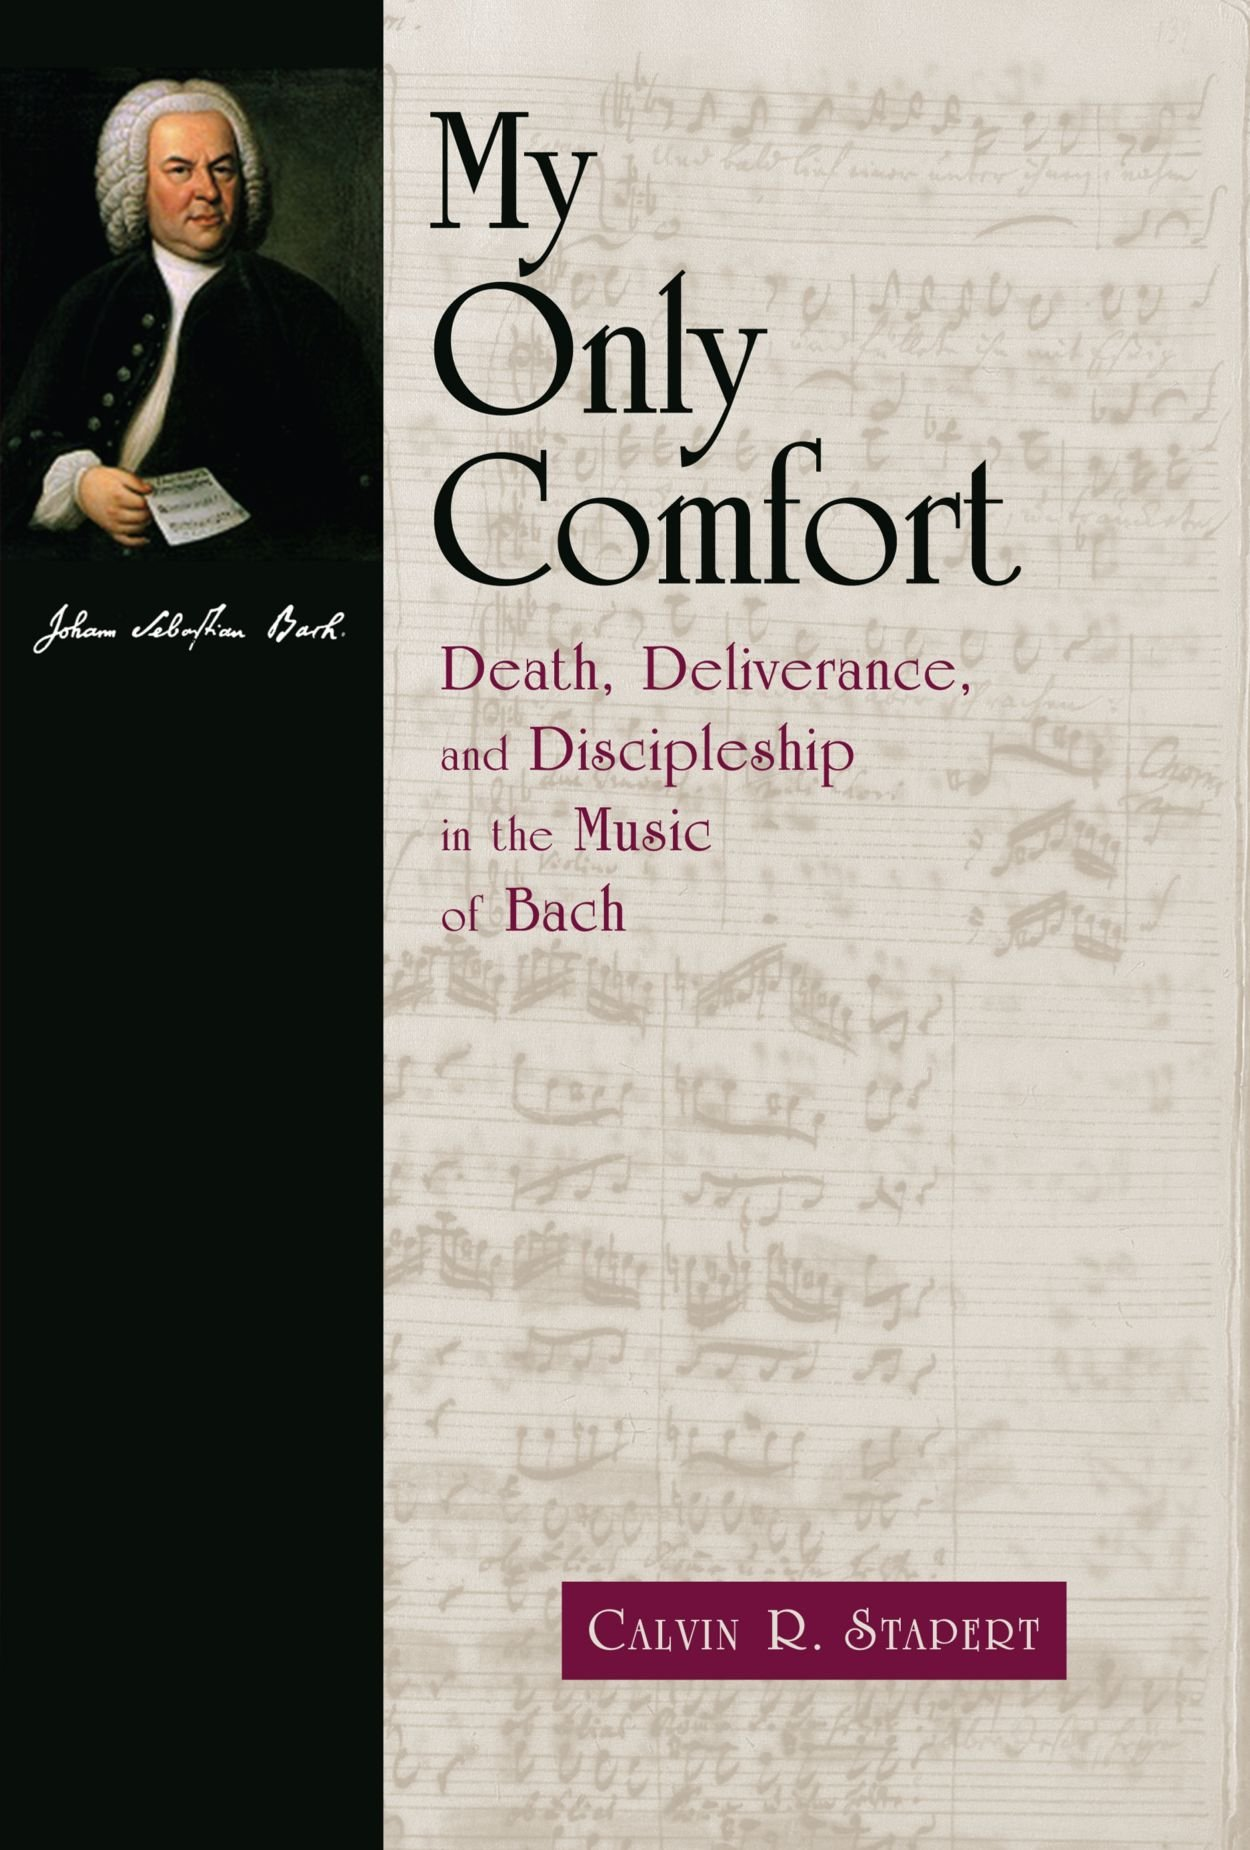 Read Online My Only Comfort: Death, Deliverance, and Discipleship in the Music of Bach (Calvin Institute of Christian Worship Liturgical Studies) ebook